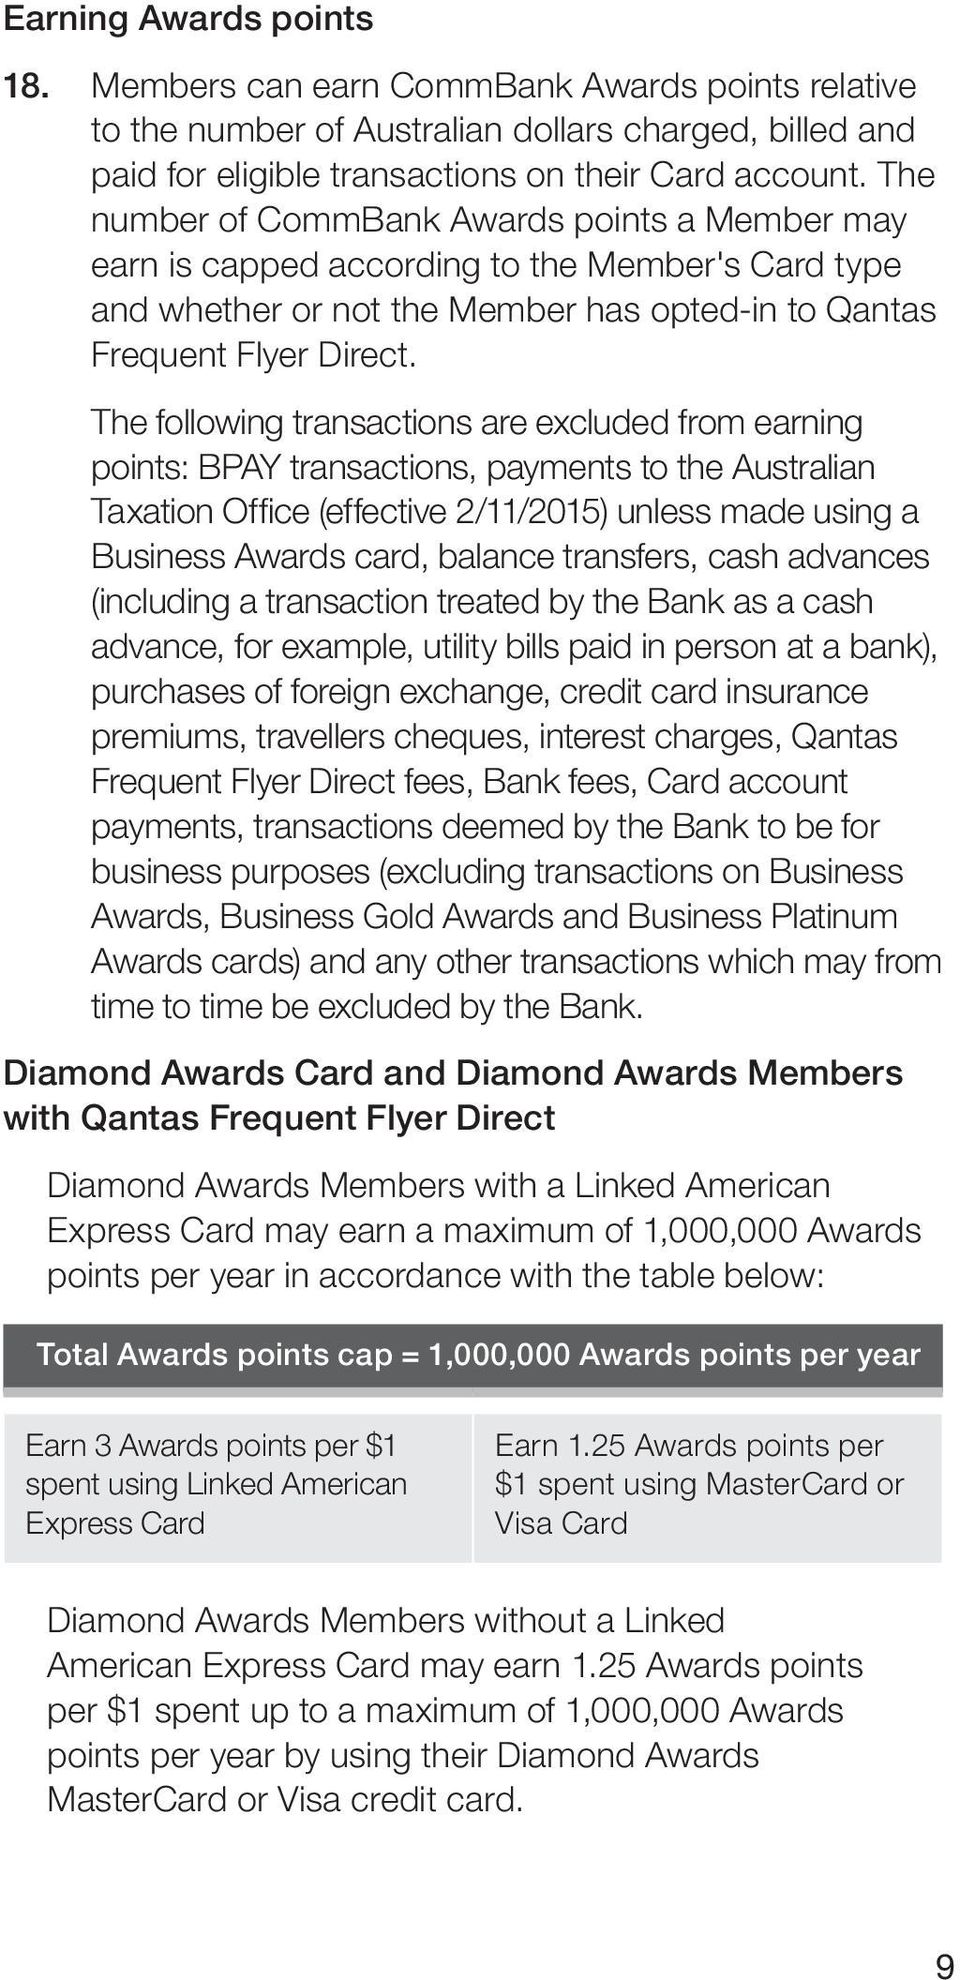 The following transactions are excluded from earning points: BPAY transactions, payments to the Australian Taxation Office (effective 2/11/2015) unless made using a Business Awards card, balance